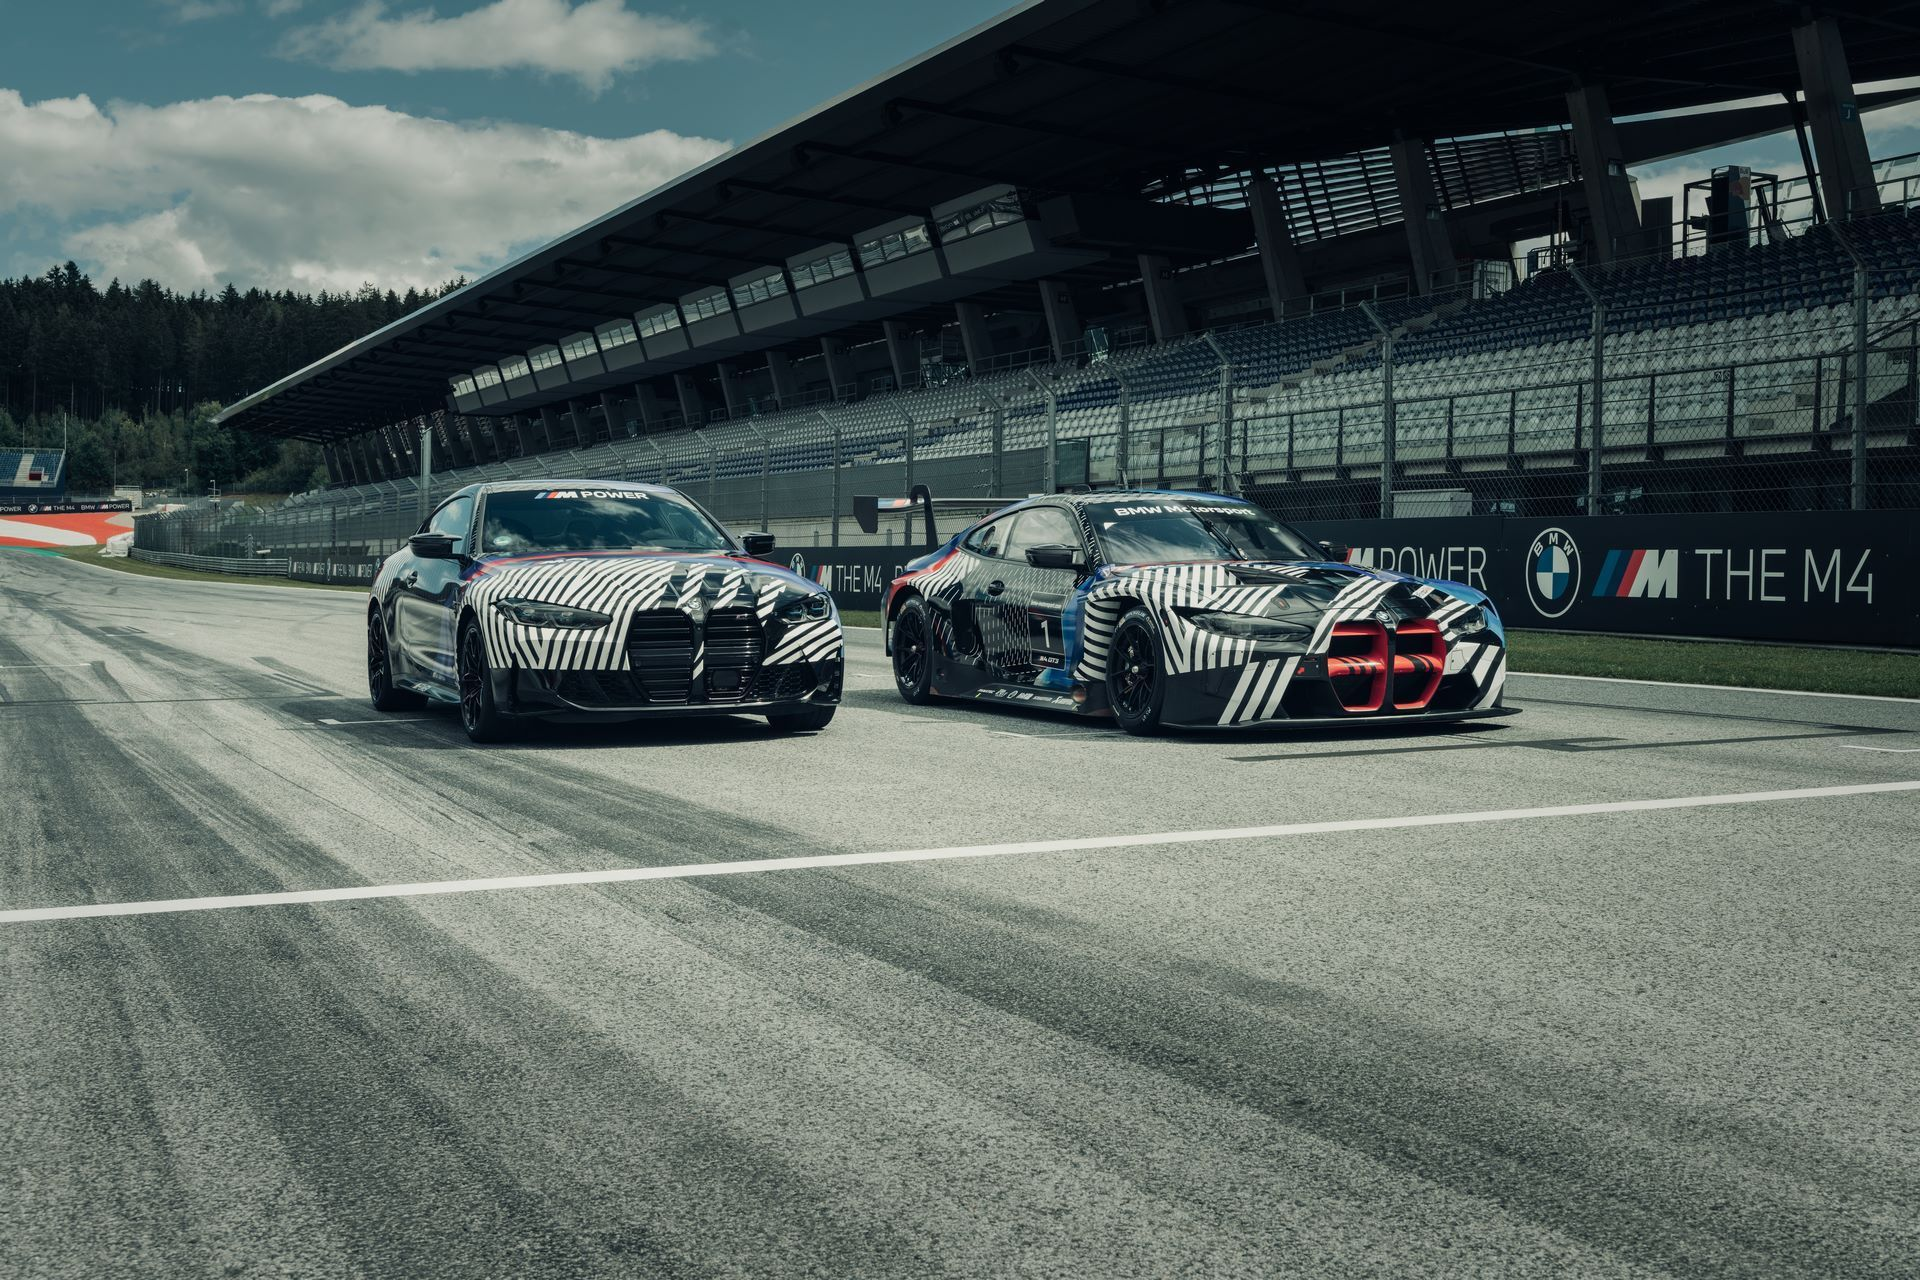 New-BMW-M4-Coupe-and-BMW-M4-GT3-prototypes-3